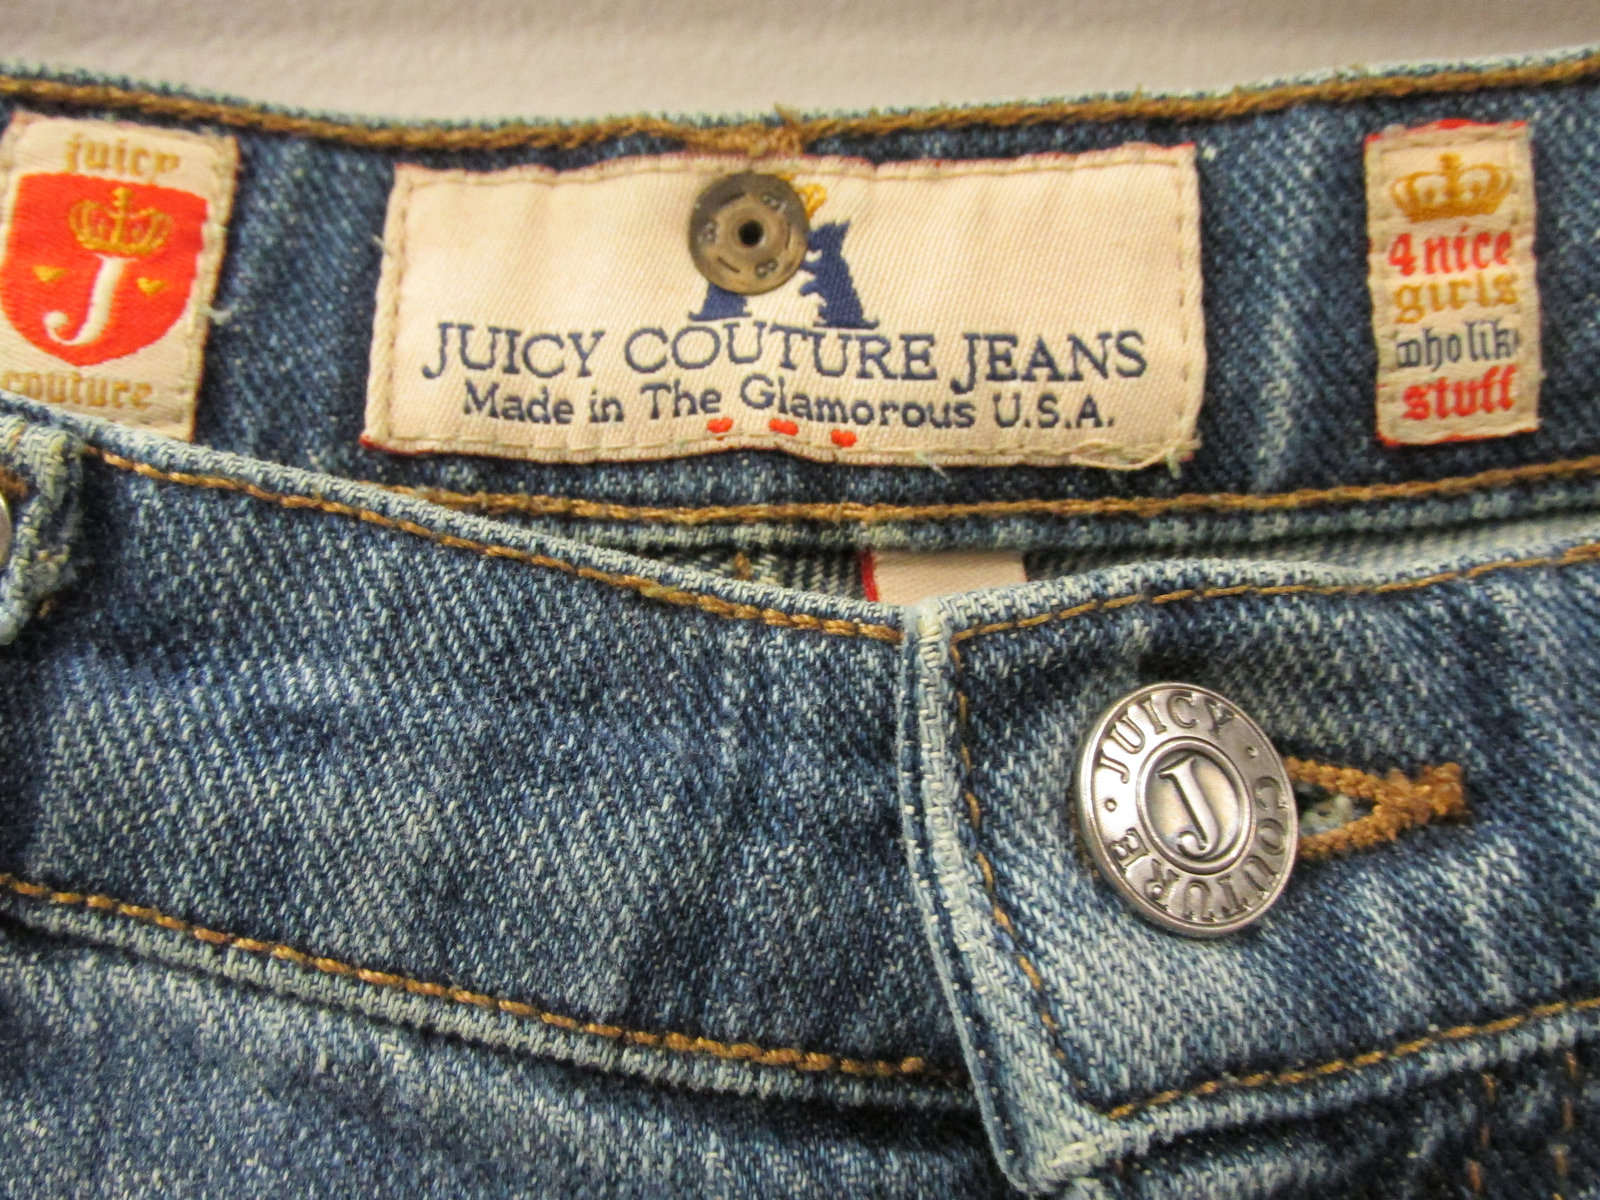 Vintage Flare Juicy Couture Jeans, Size 29 image 2